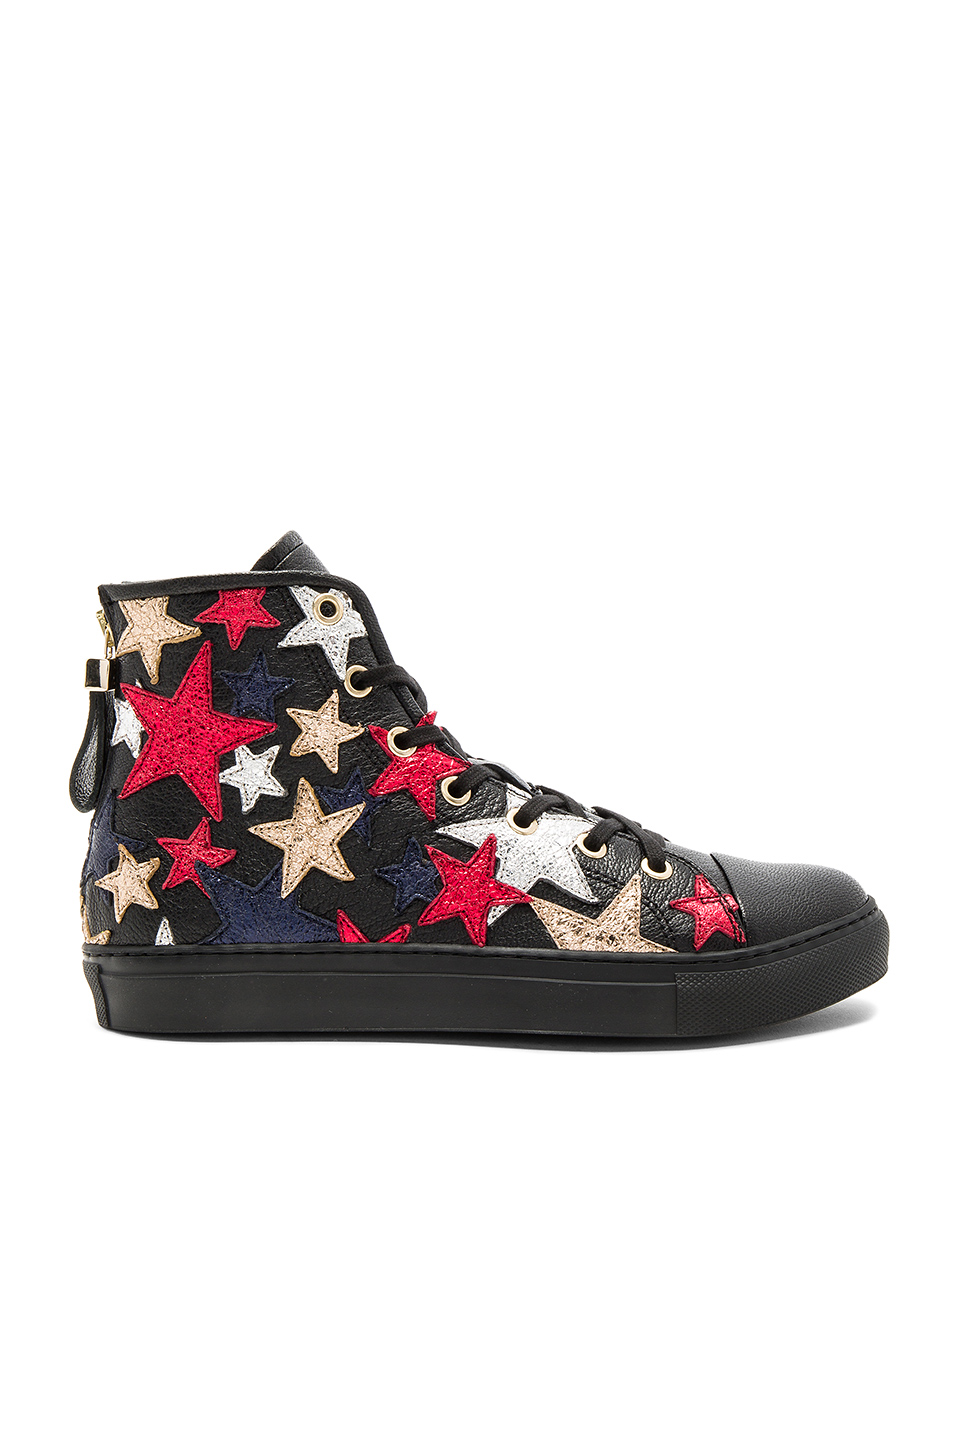 Hilfiger Collection Rock N Roll High Sneaker in Jet Black & Multi